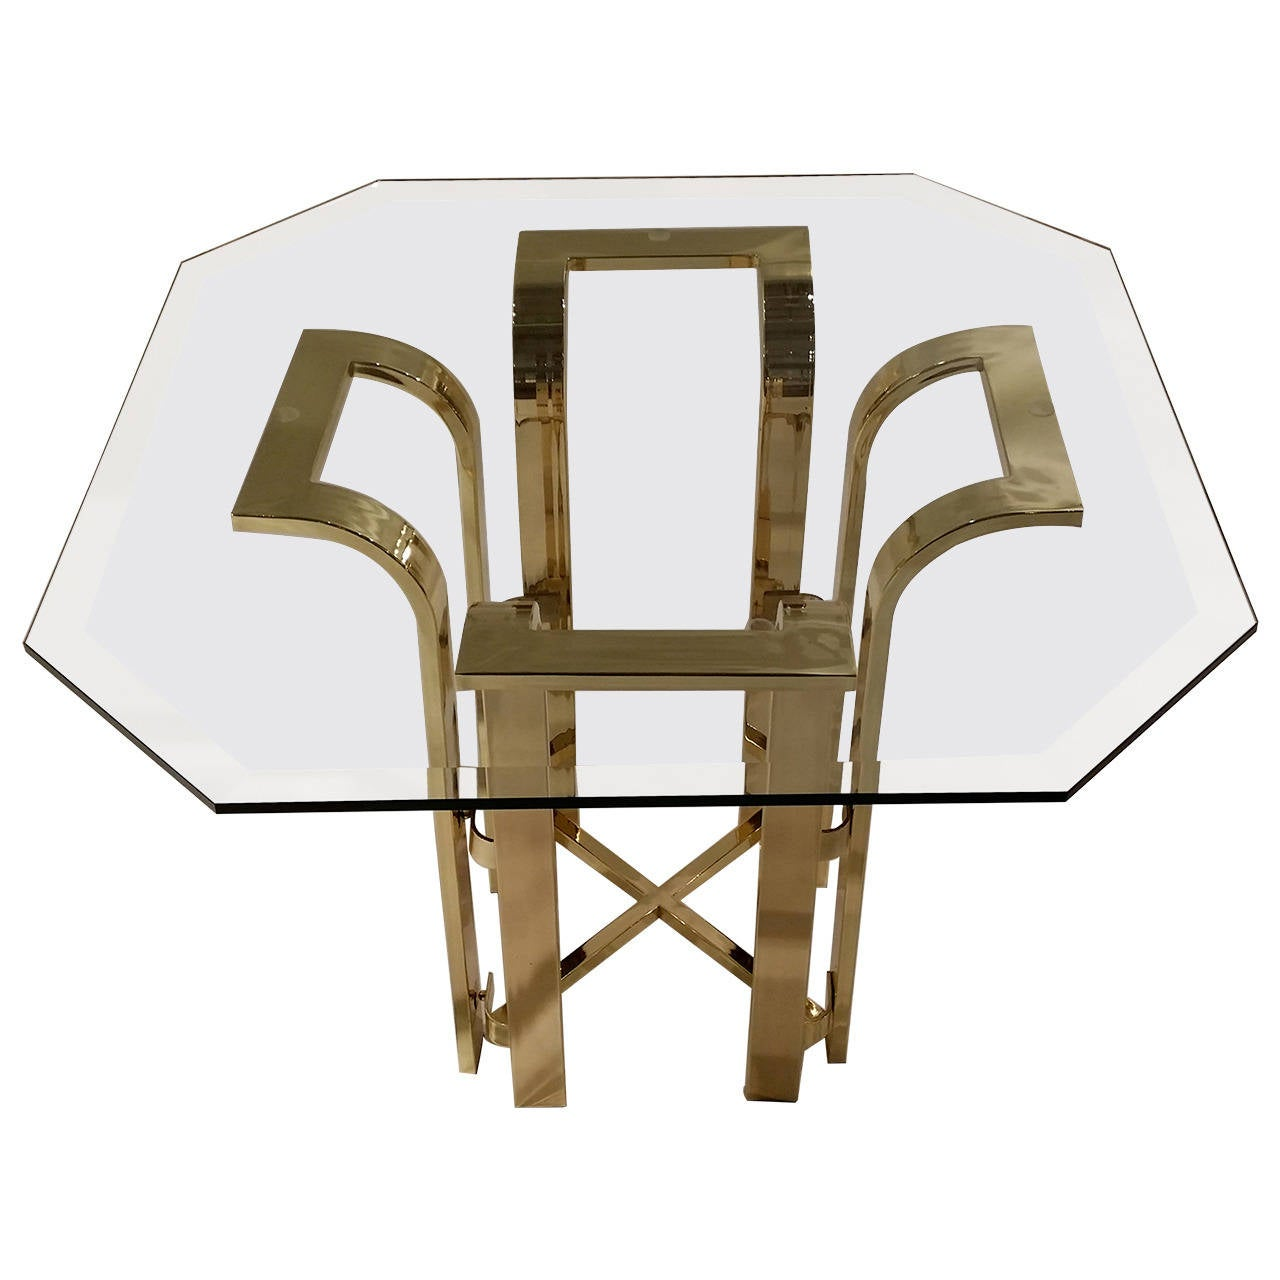 Mid Century Modern Tulip Form Glass and Gold Tone Metal Side Table